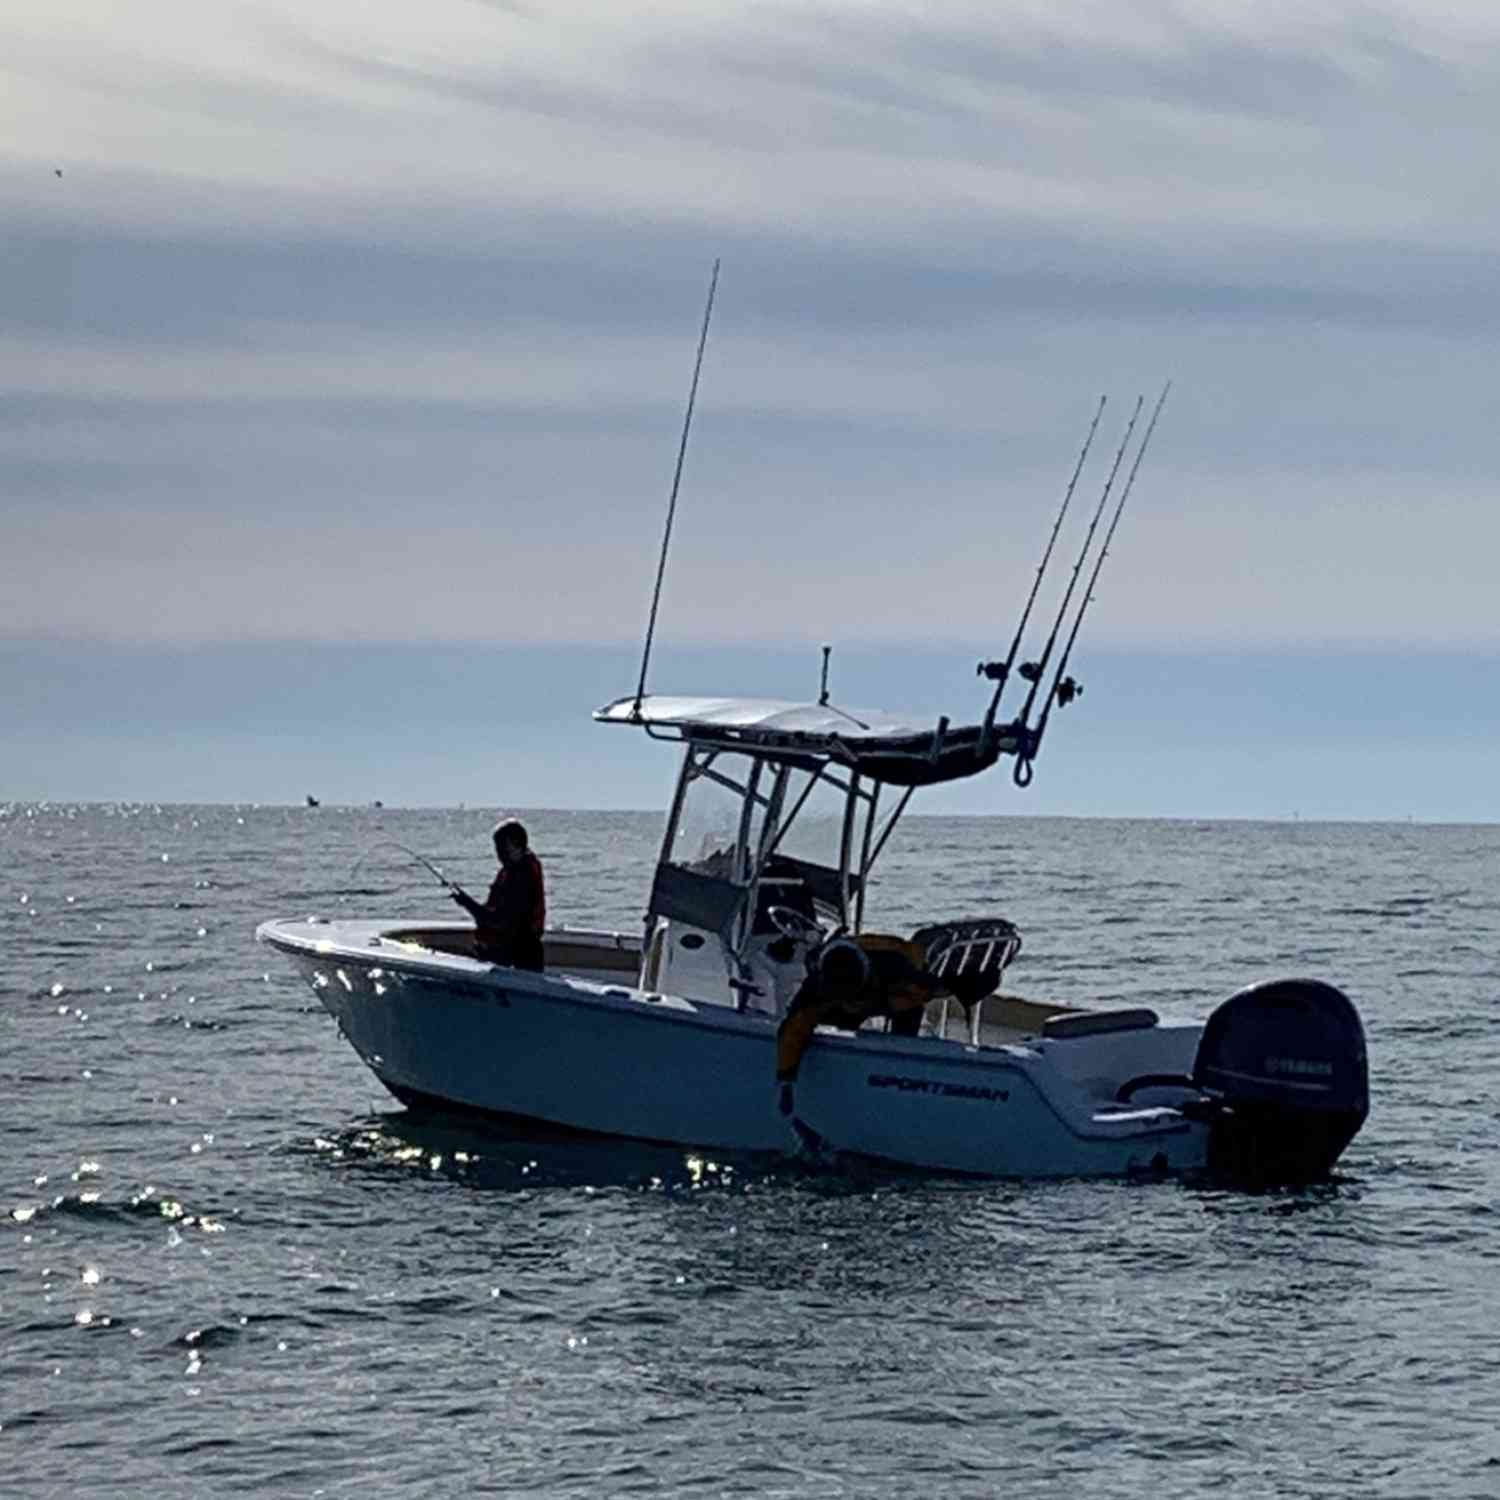 Title: Doubled up! - On board their Sportsman Open 212 Center Console - Location: Pointpleasant,NJ. Participating in the Photo Contest #SportsmanApril2020